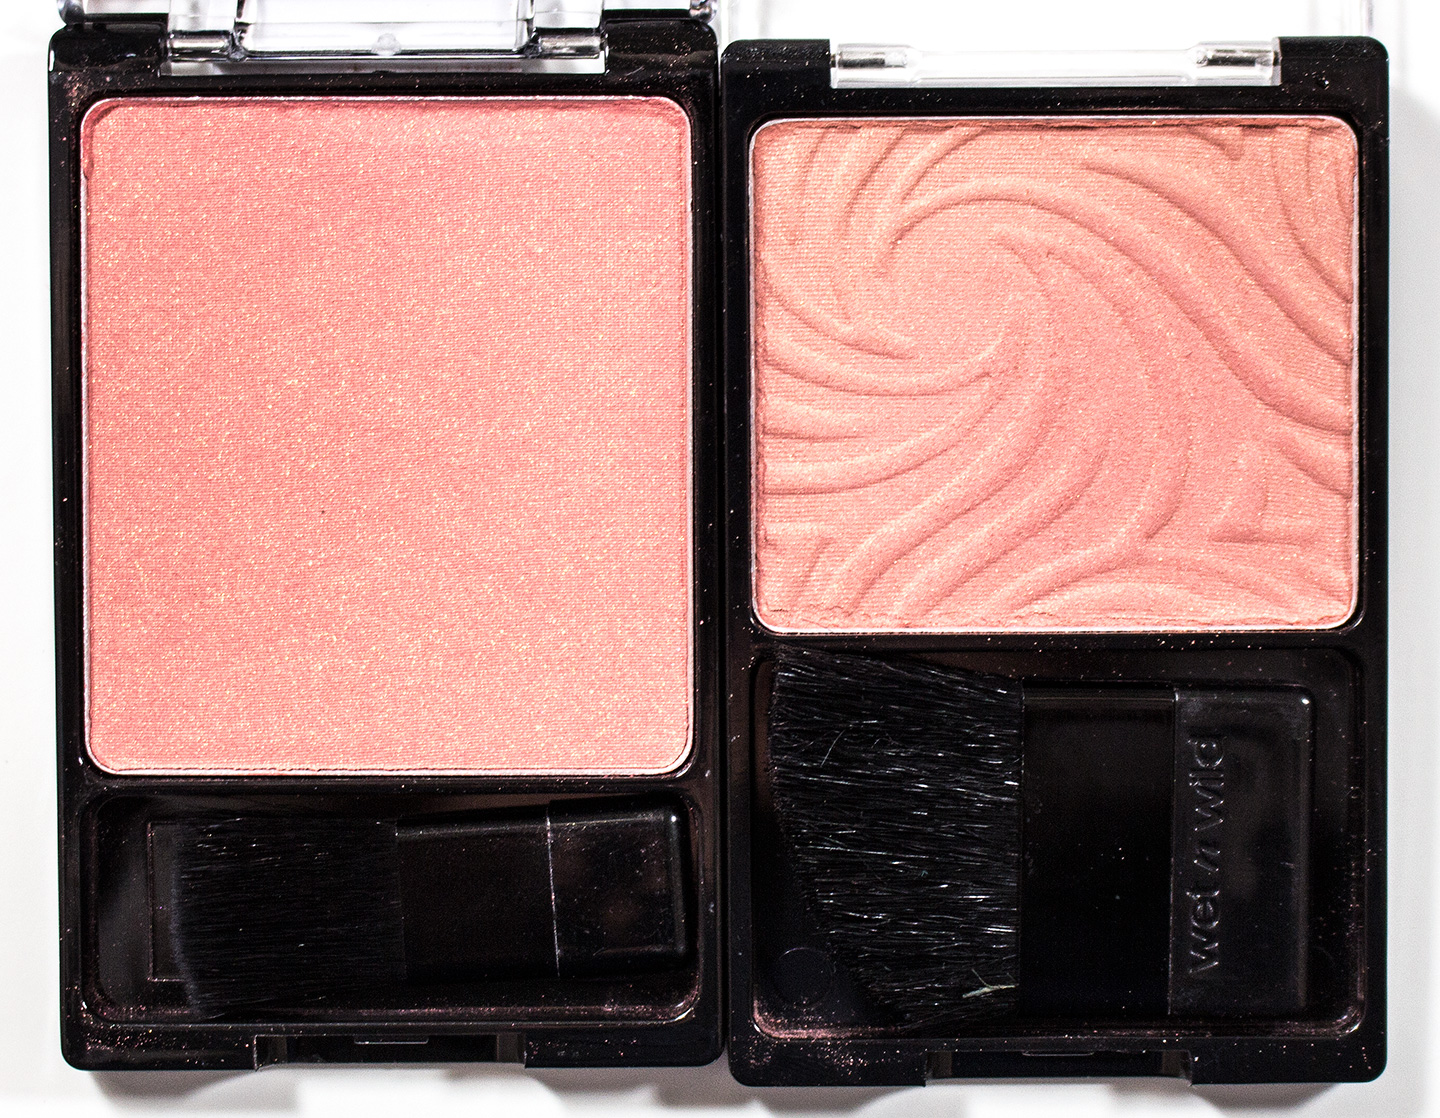 Wet n Wild Color Icon Natural Nude Eyeshadow Palette